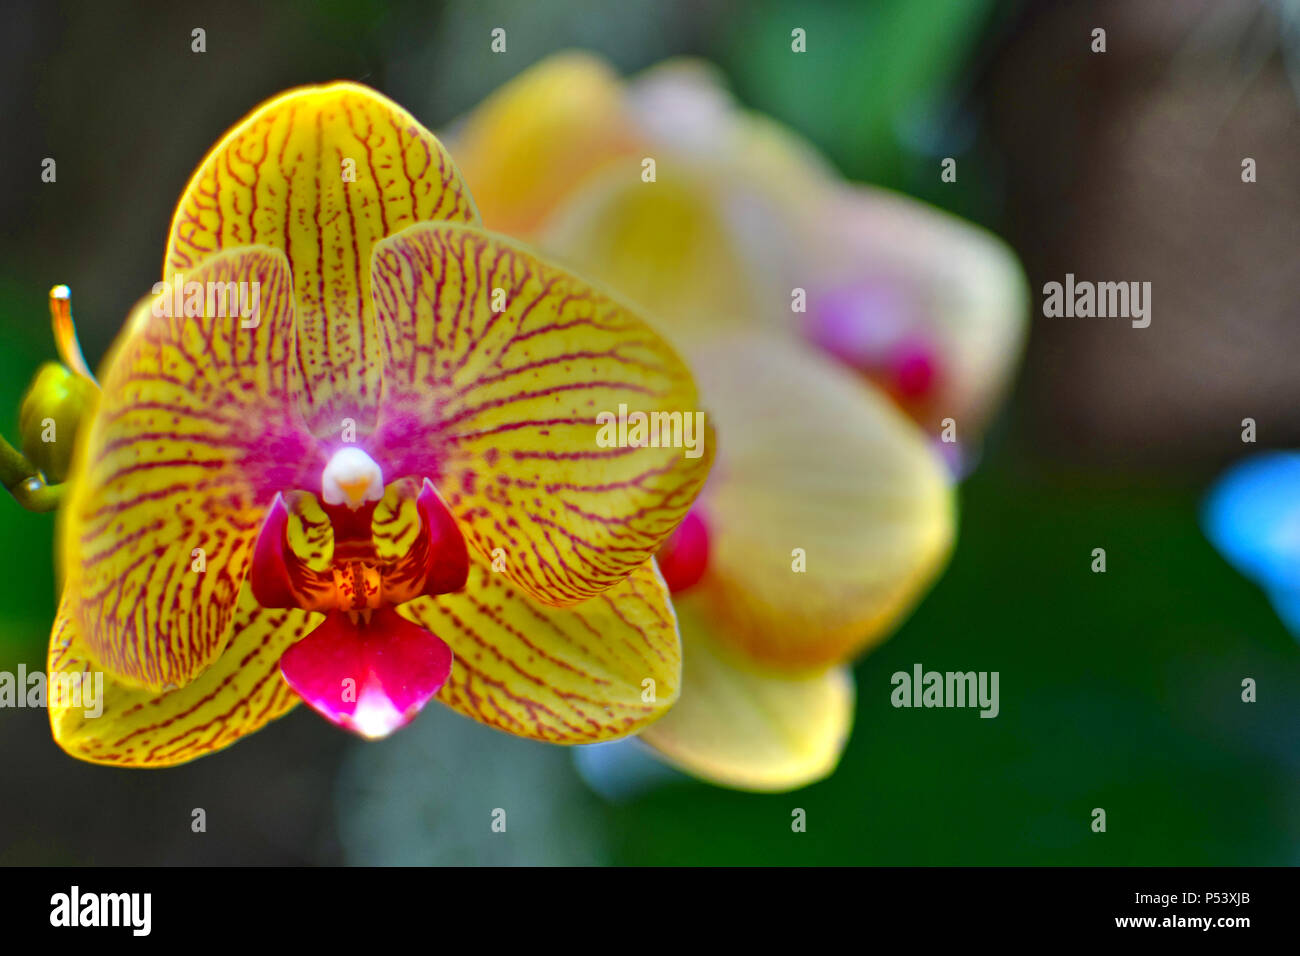 A flower taken at a low depth of field. - Stock Image